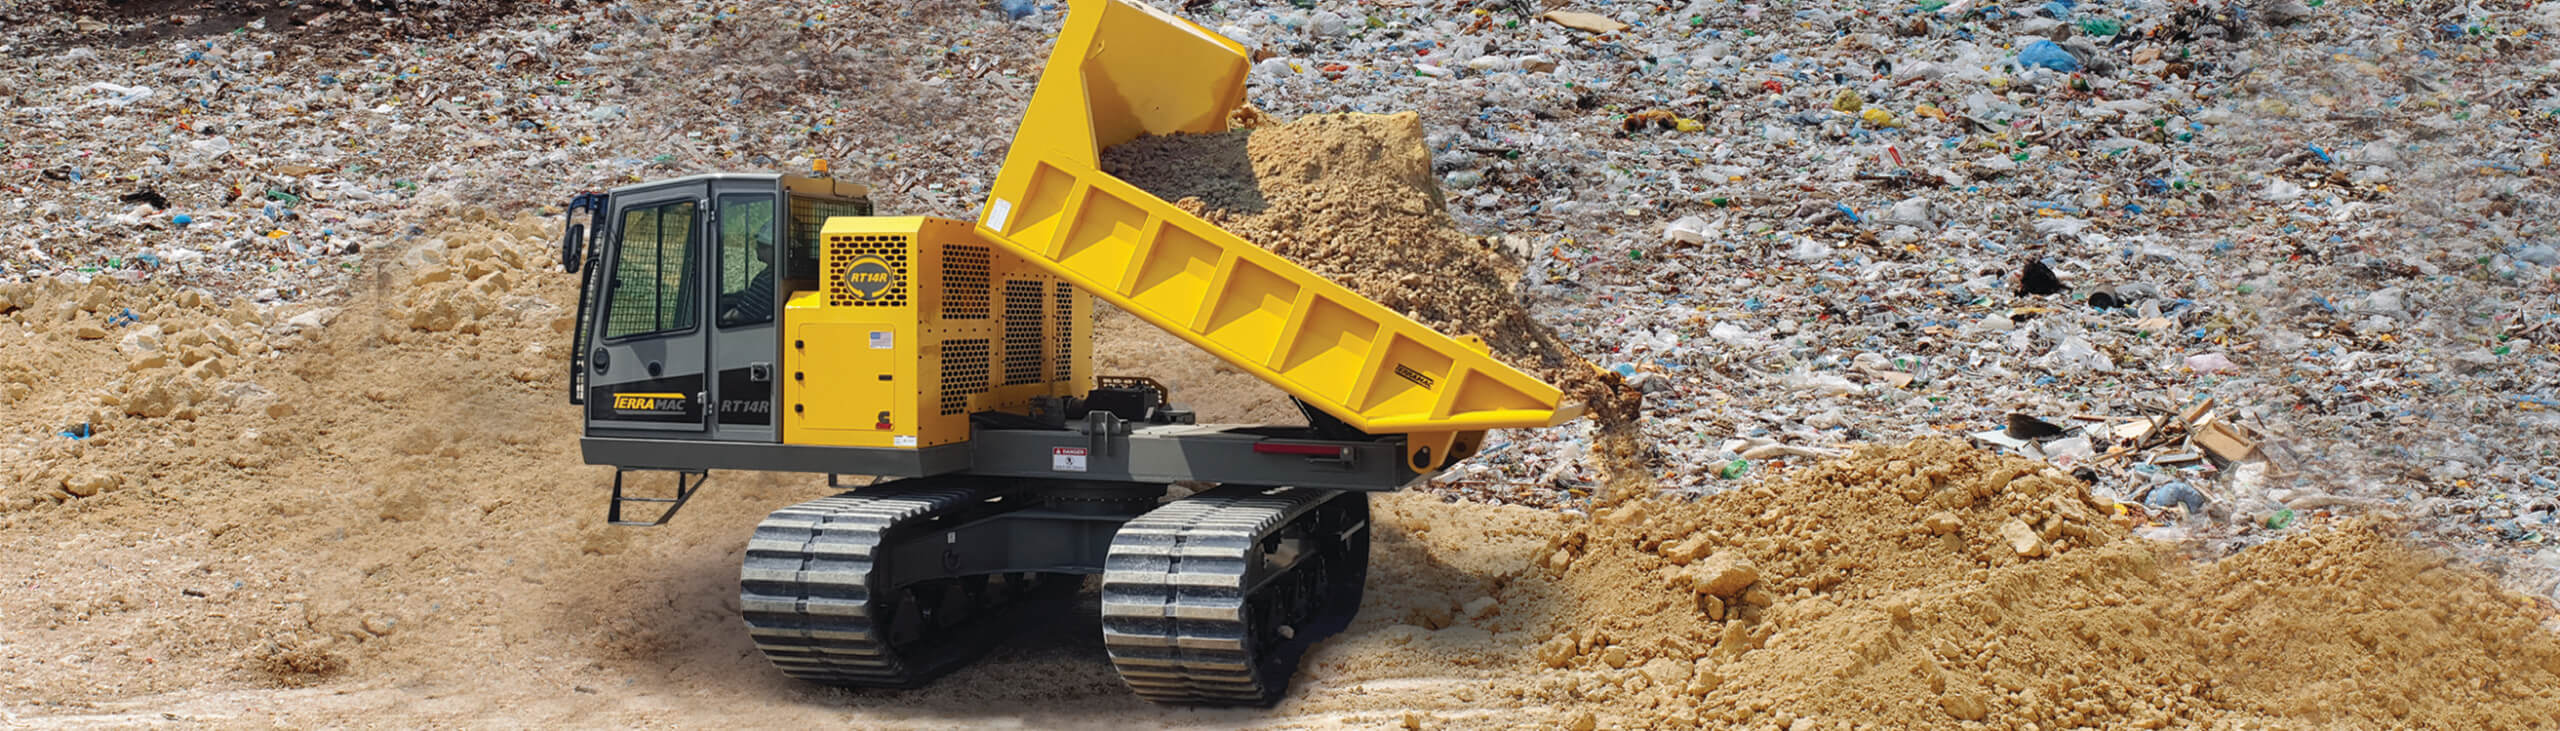 landfill management applications RT14R crawler carrier in a landfill